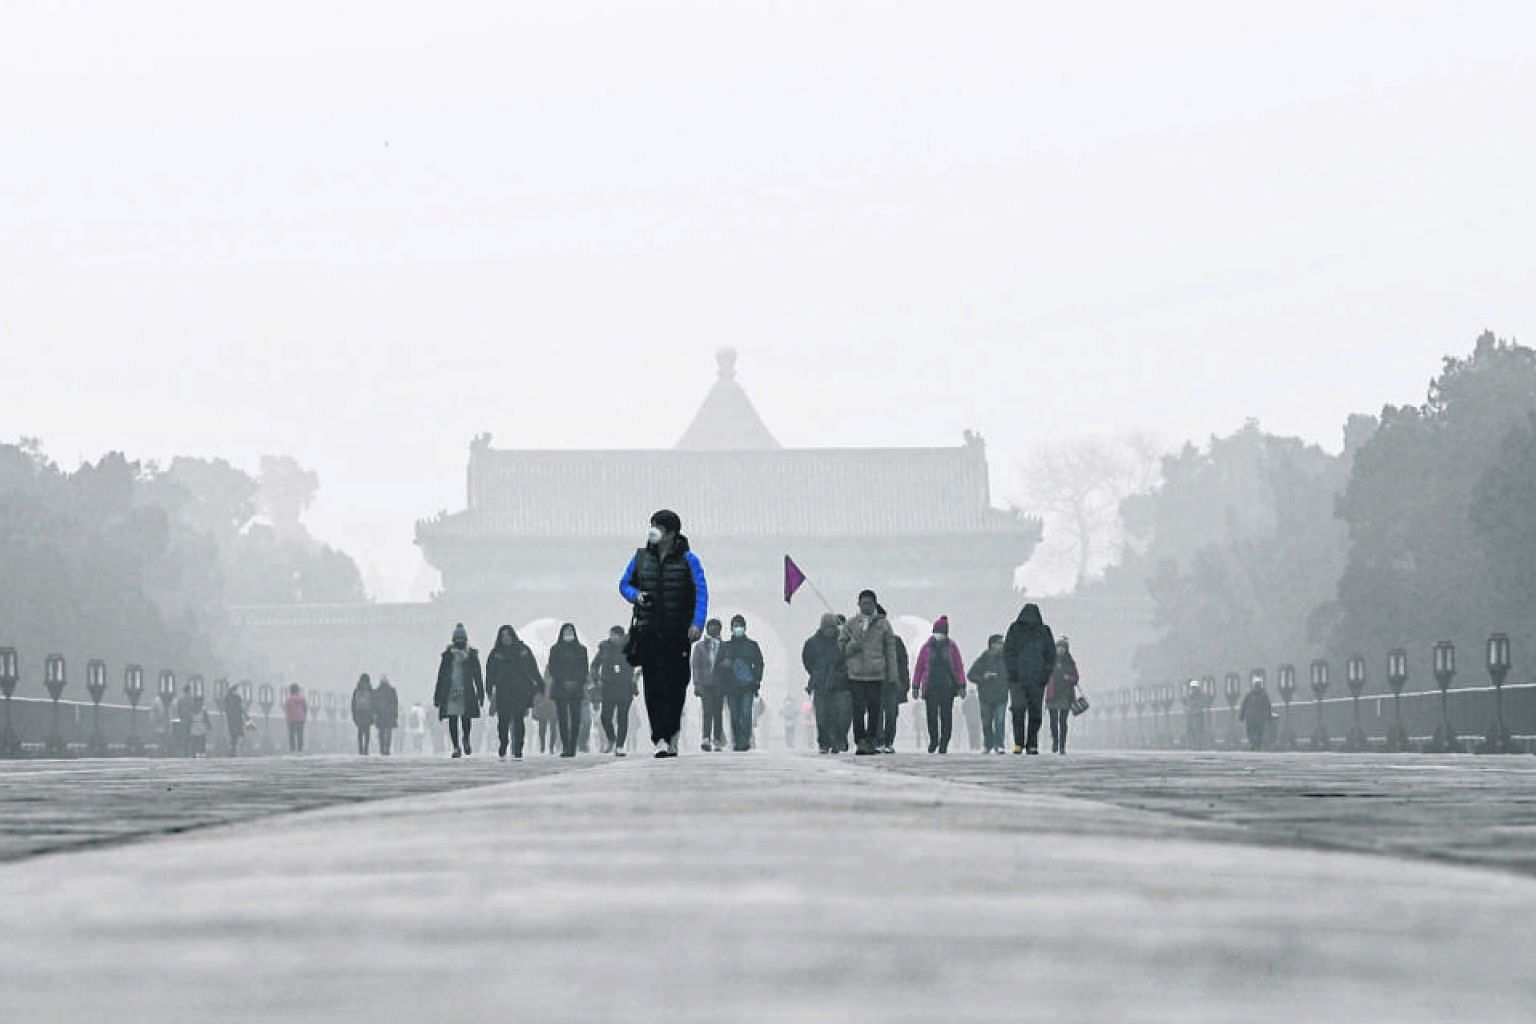 China has been working to curb choking levels of pollution by cutting coal use, improving fuel standards and encouraging cleaner forms of industry and energy.